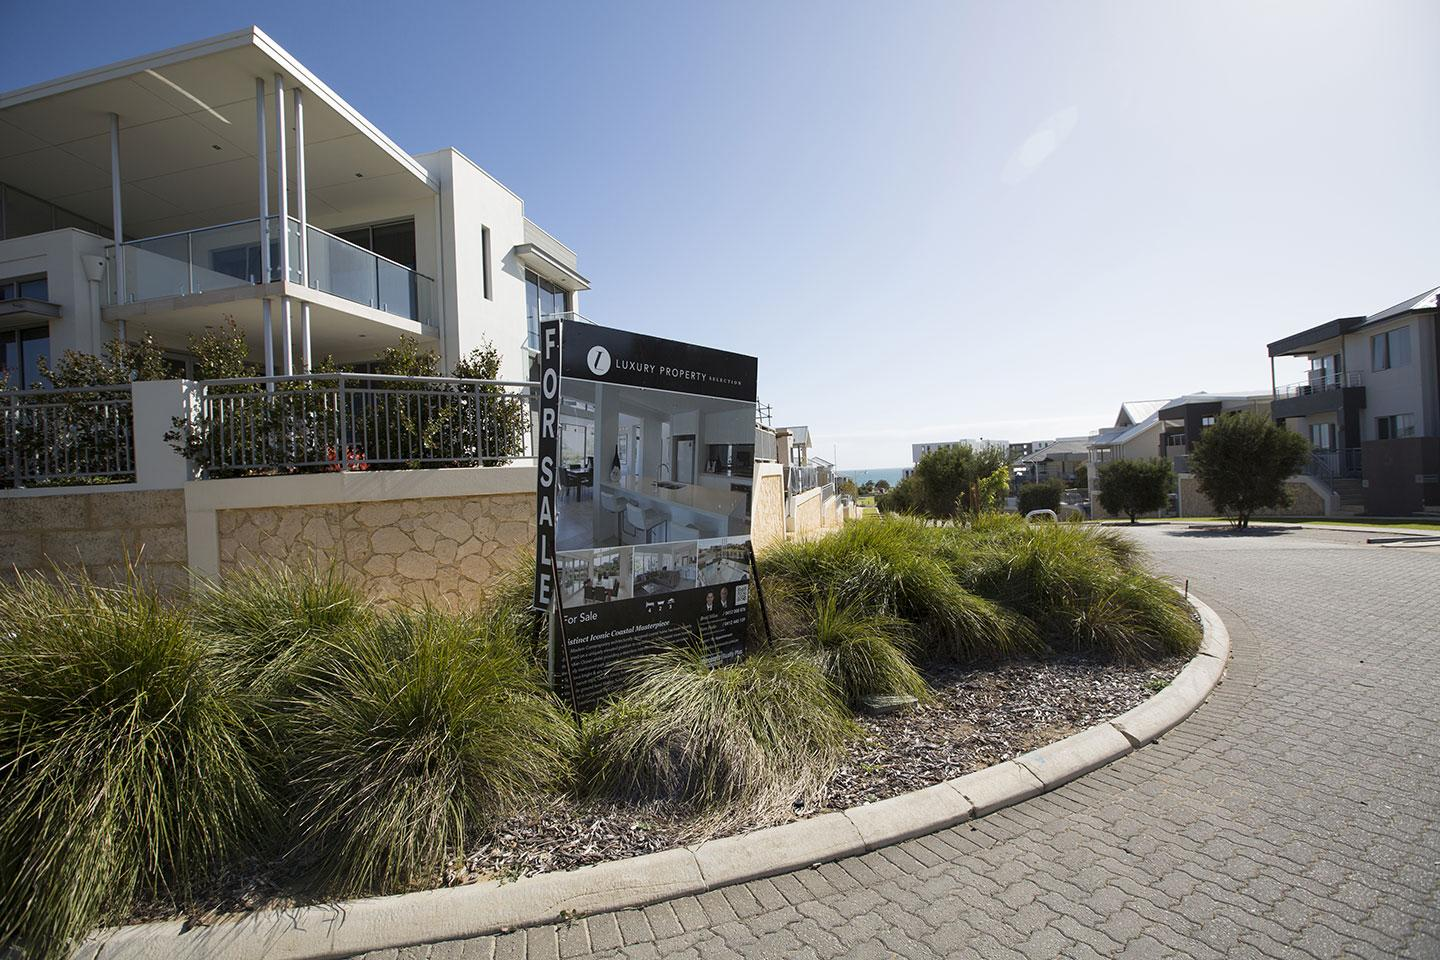 House prices fall in January